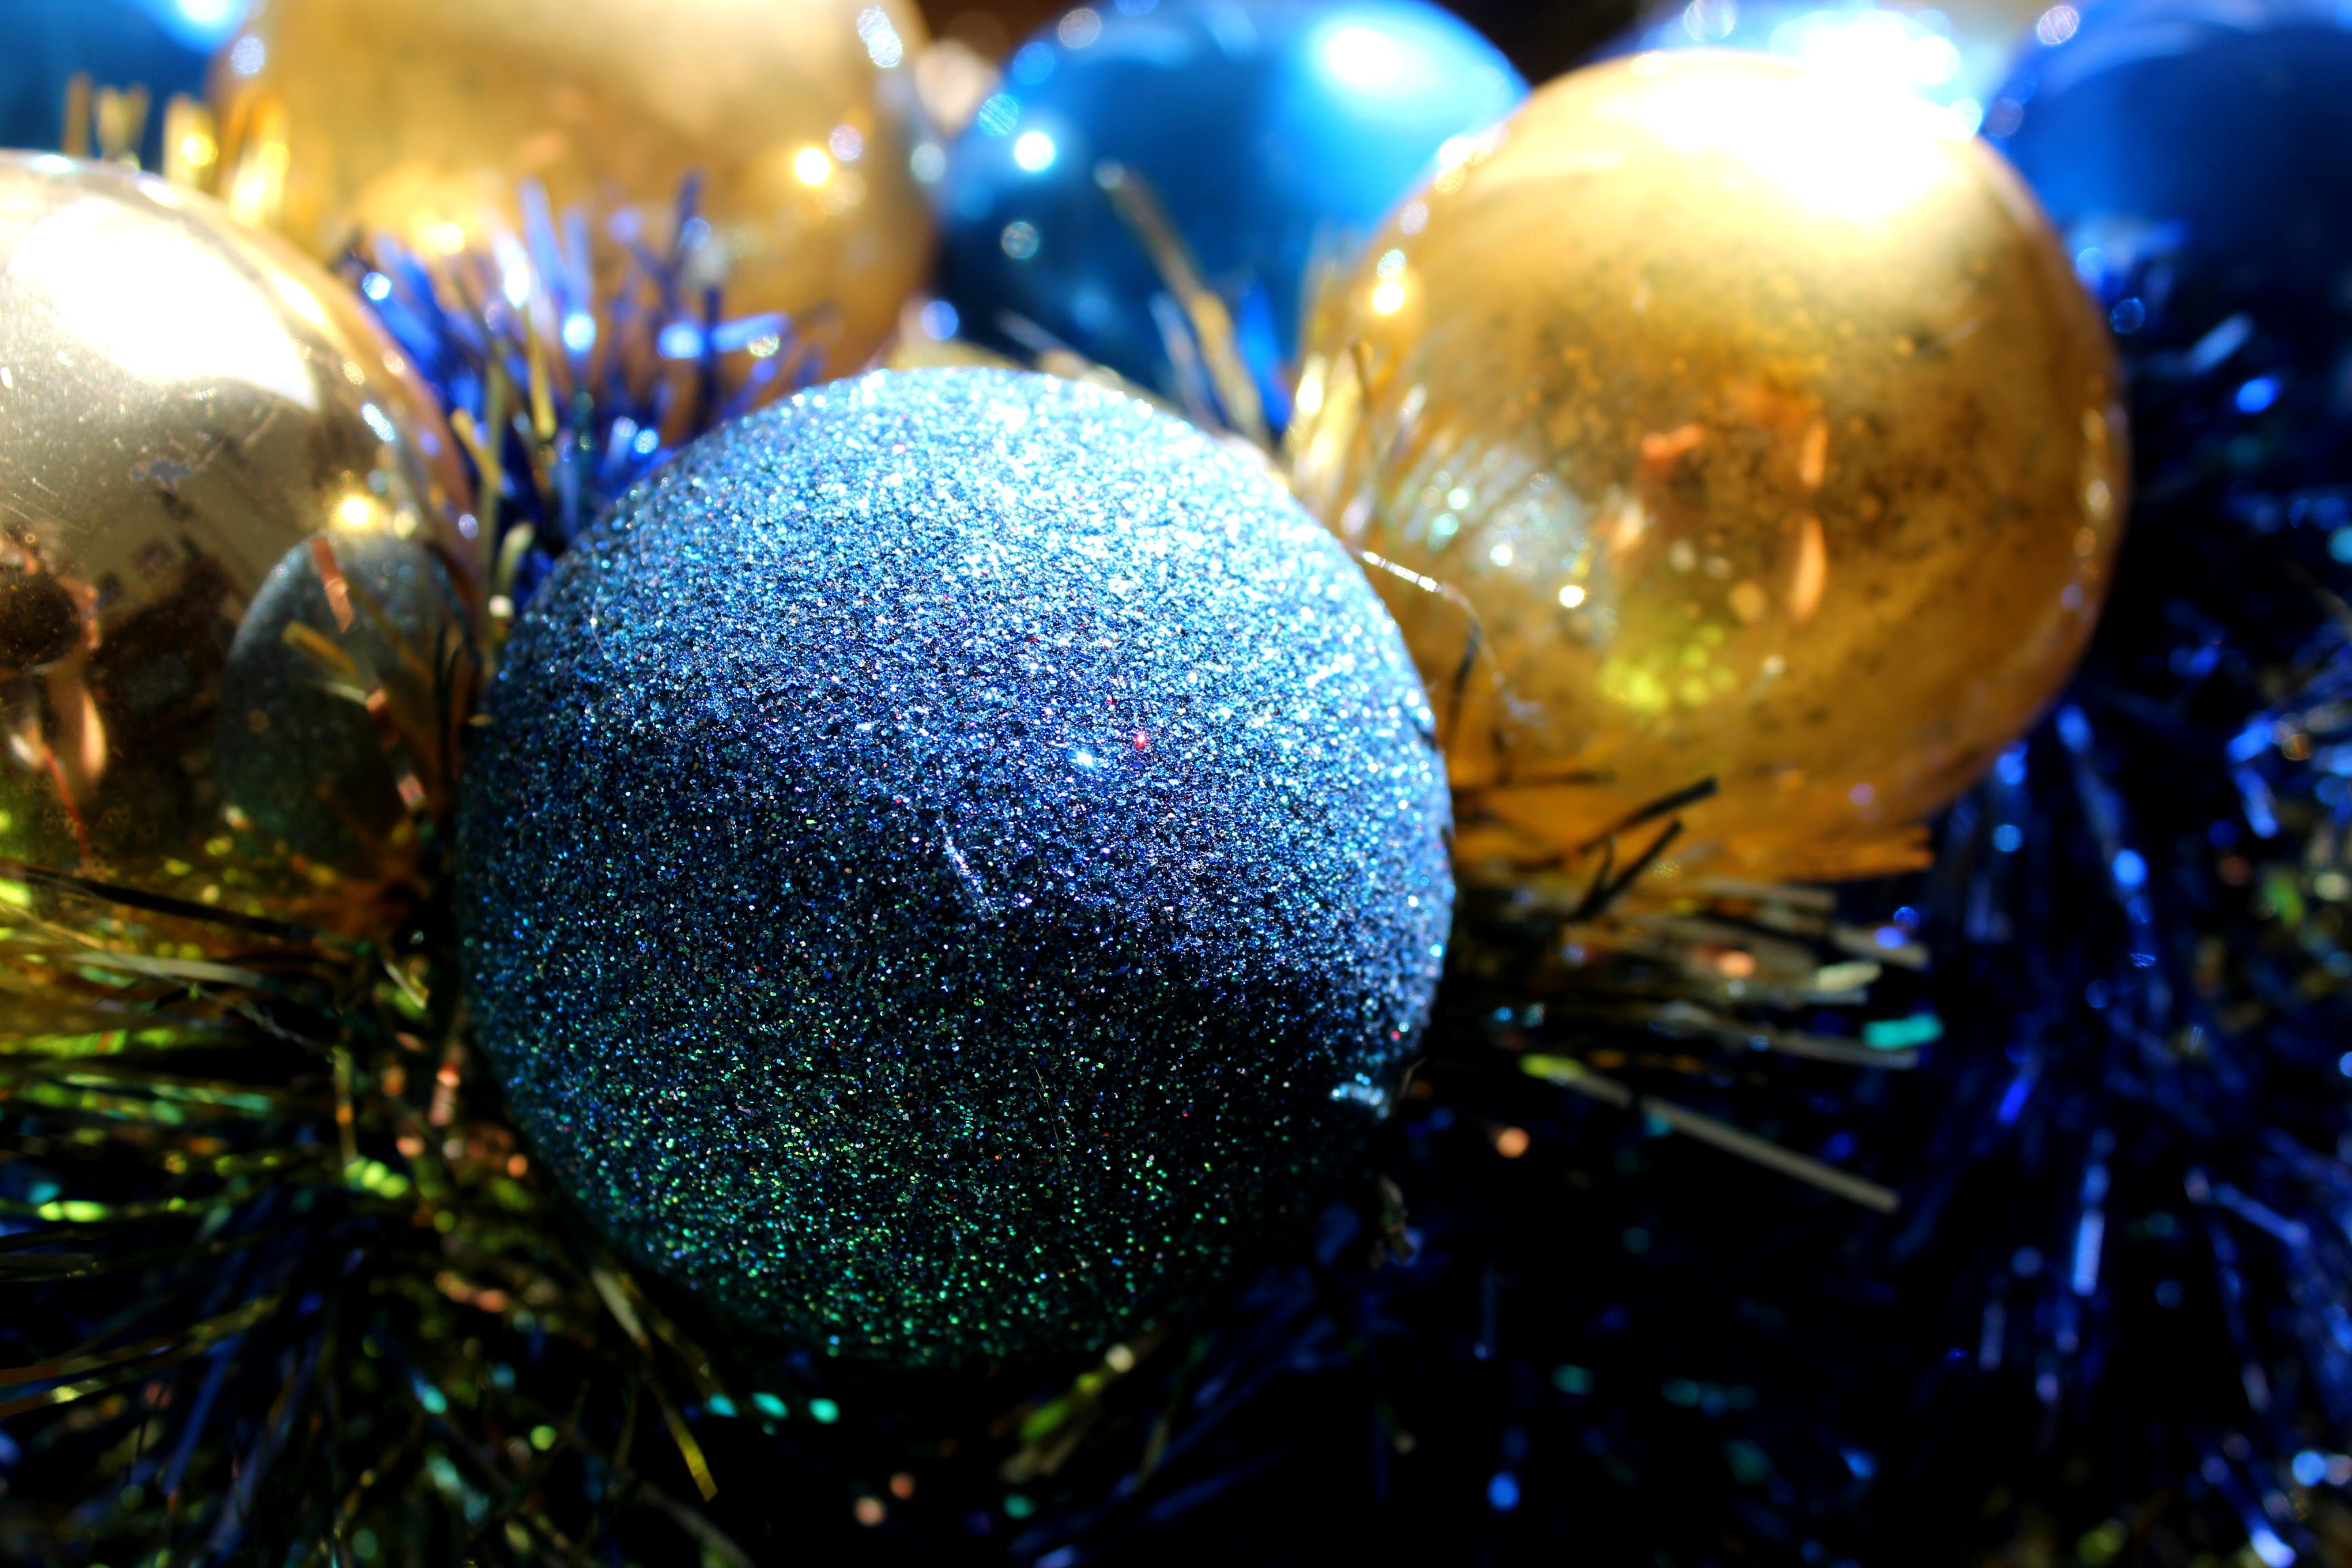 Gray, Blue, and Gold-colored Baubles